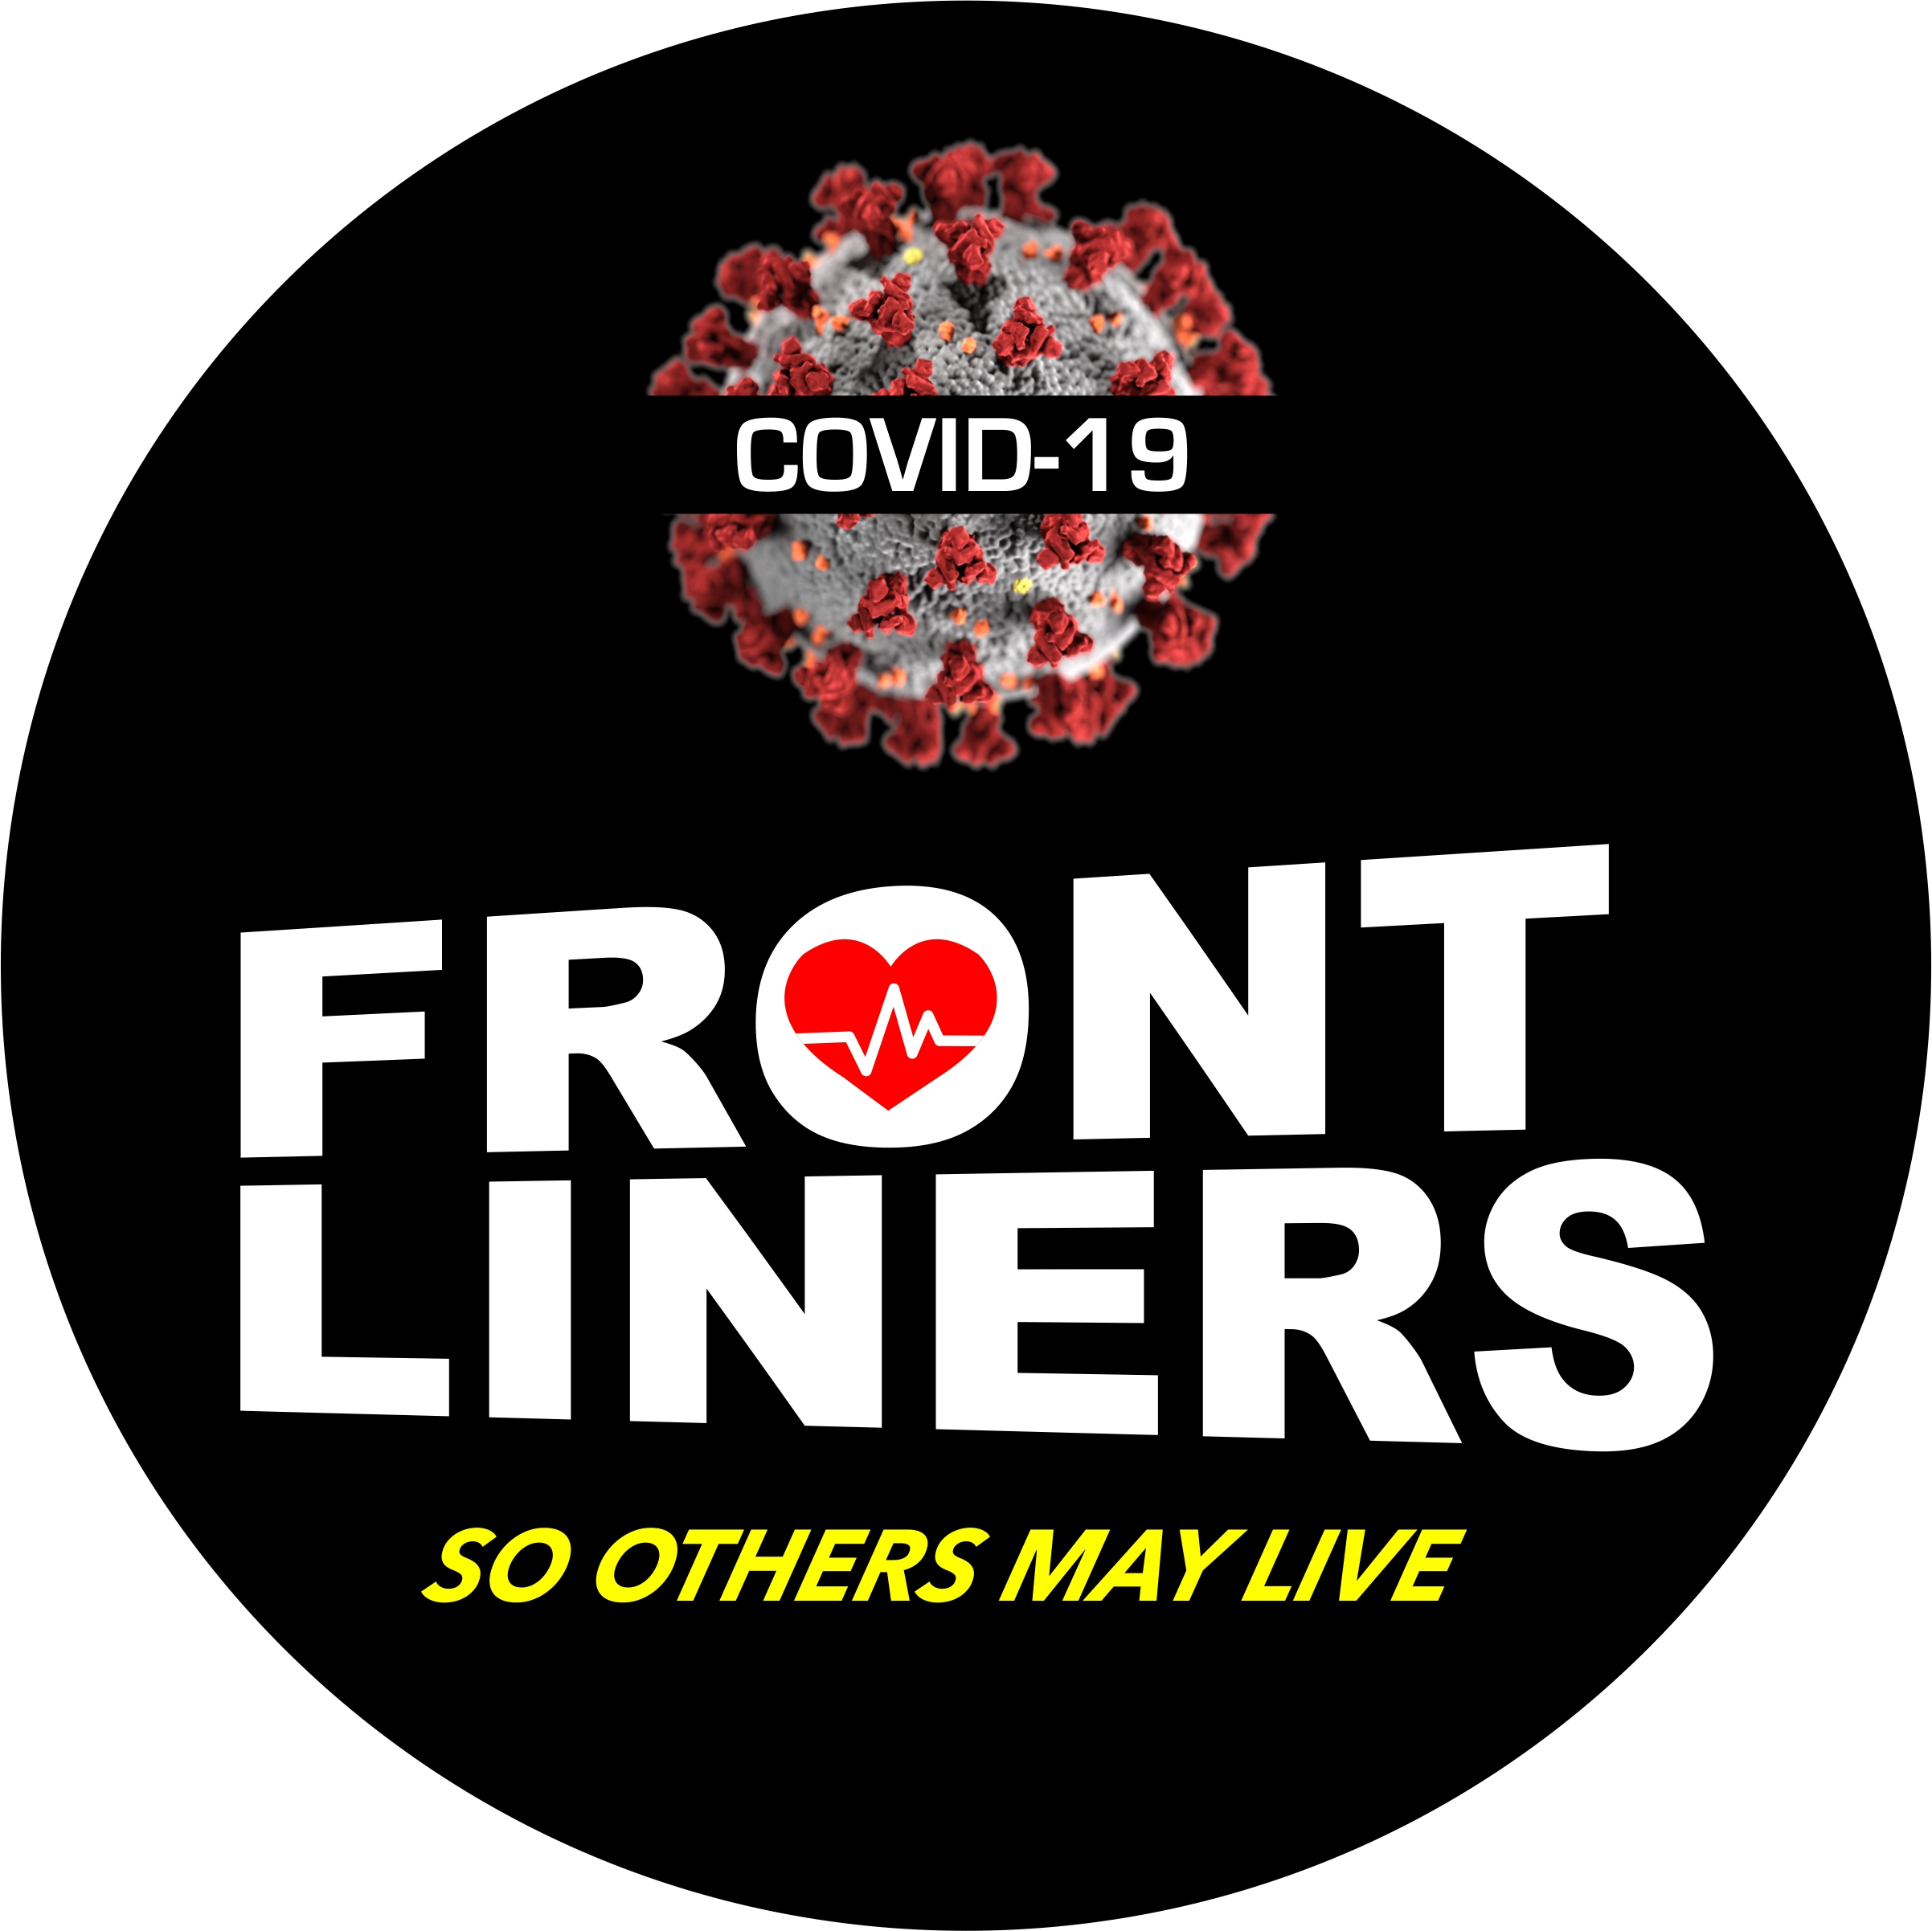 Frontliner COVID-19